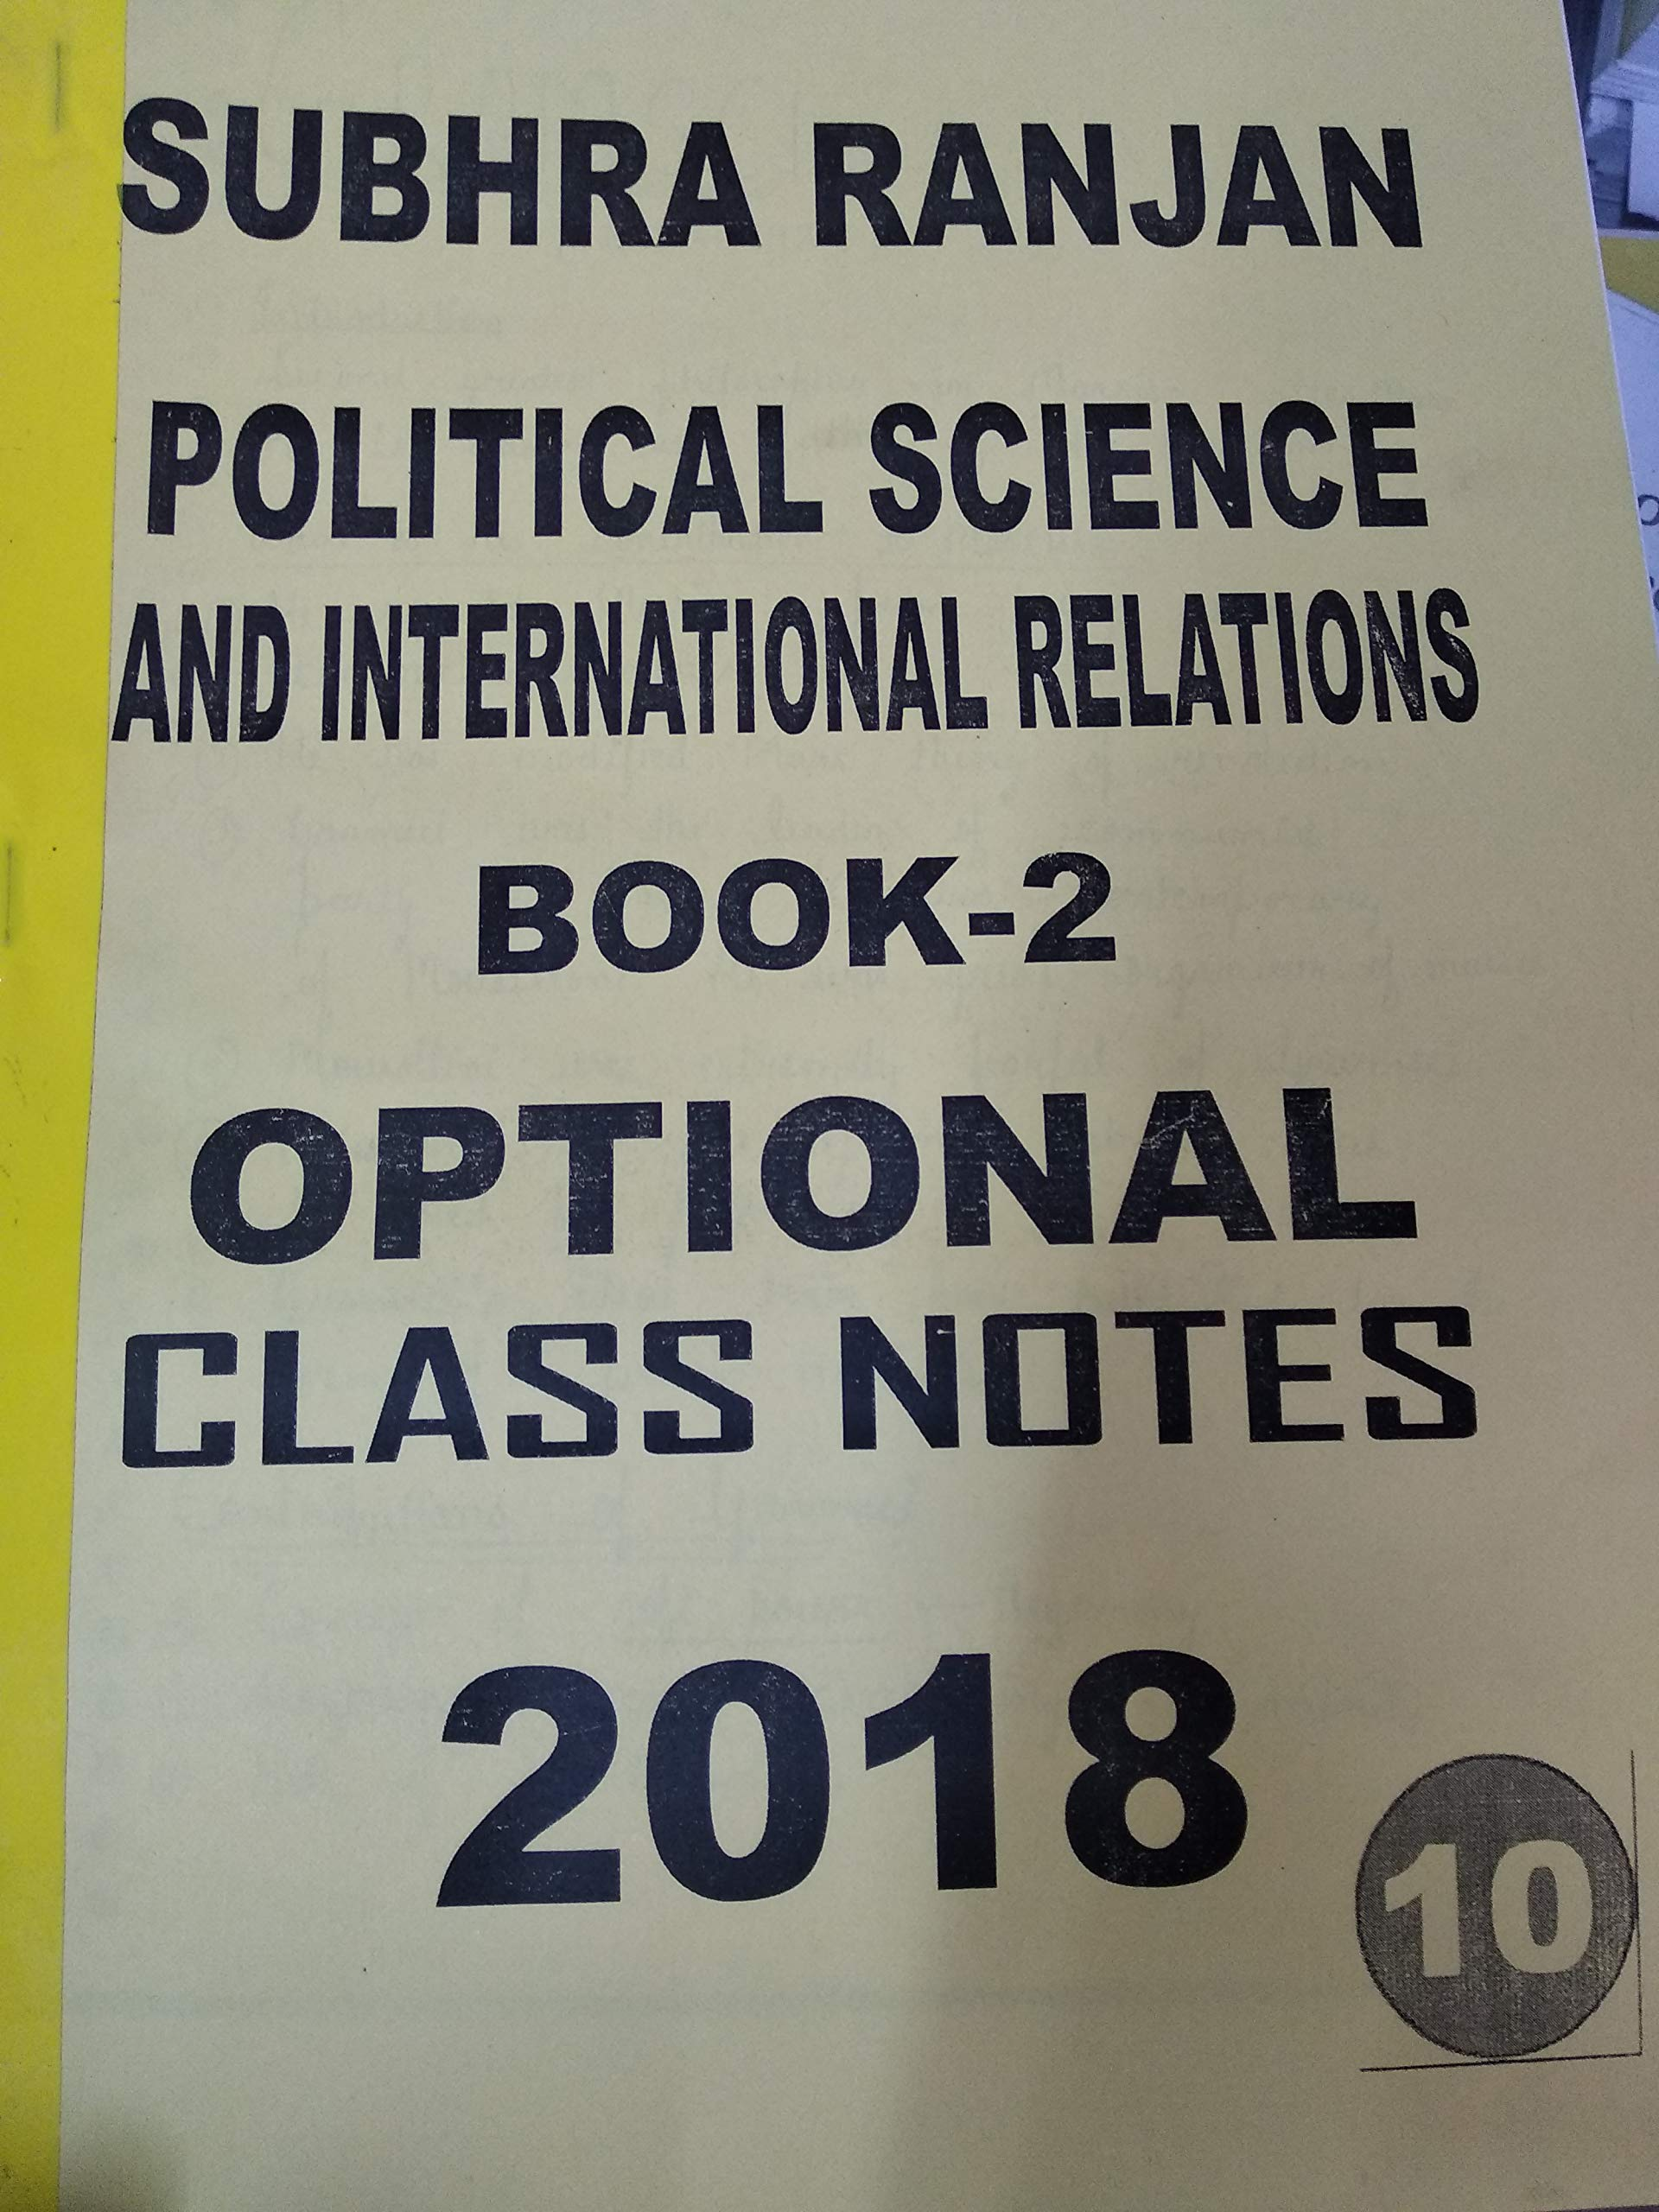 Amazon in: Buy Subhra ranjan mam political science notes 2018 Book